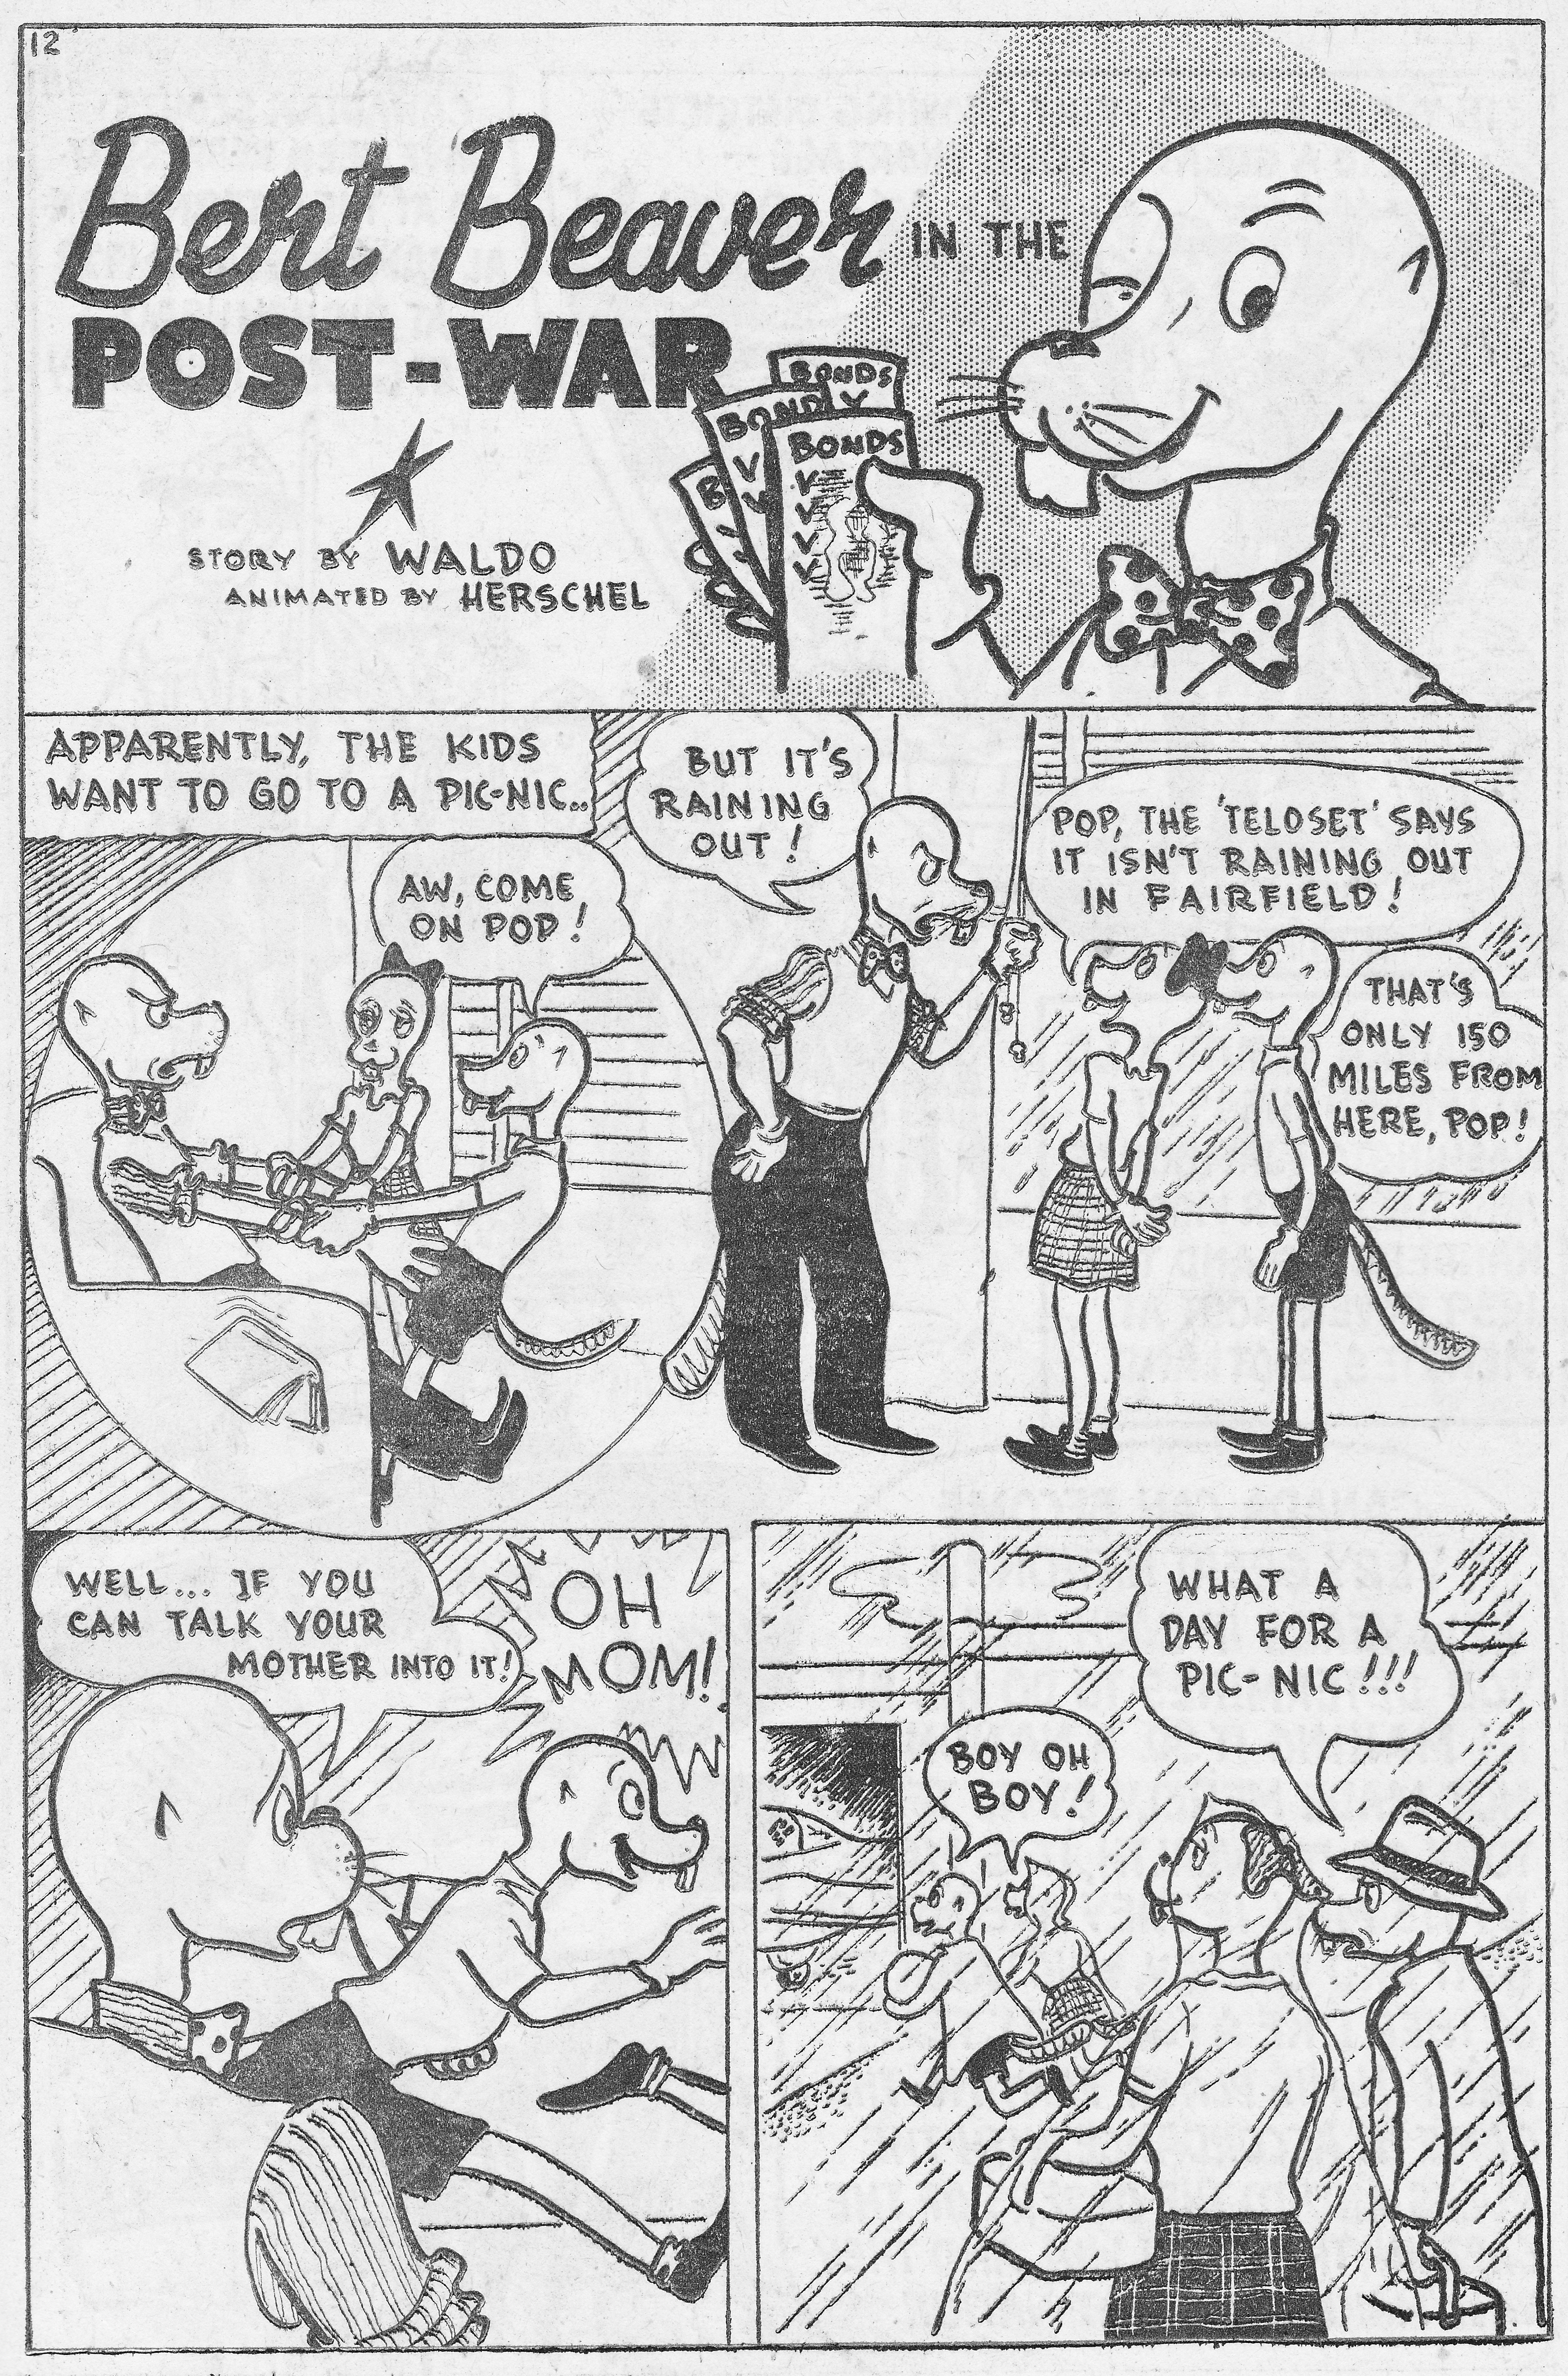 C:\Users\Robert\Documents\CARTOONING ILLUSTRATION ANIMATION\IMAGE CARTOON\IMAGE CARTOON B\BERT BEAVER, Canadian Heroes, 5-1, Feb 1945, 12.jpg